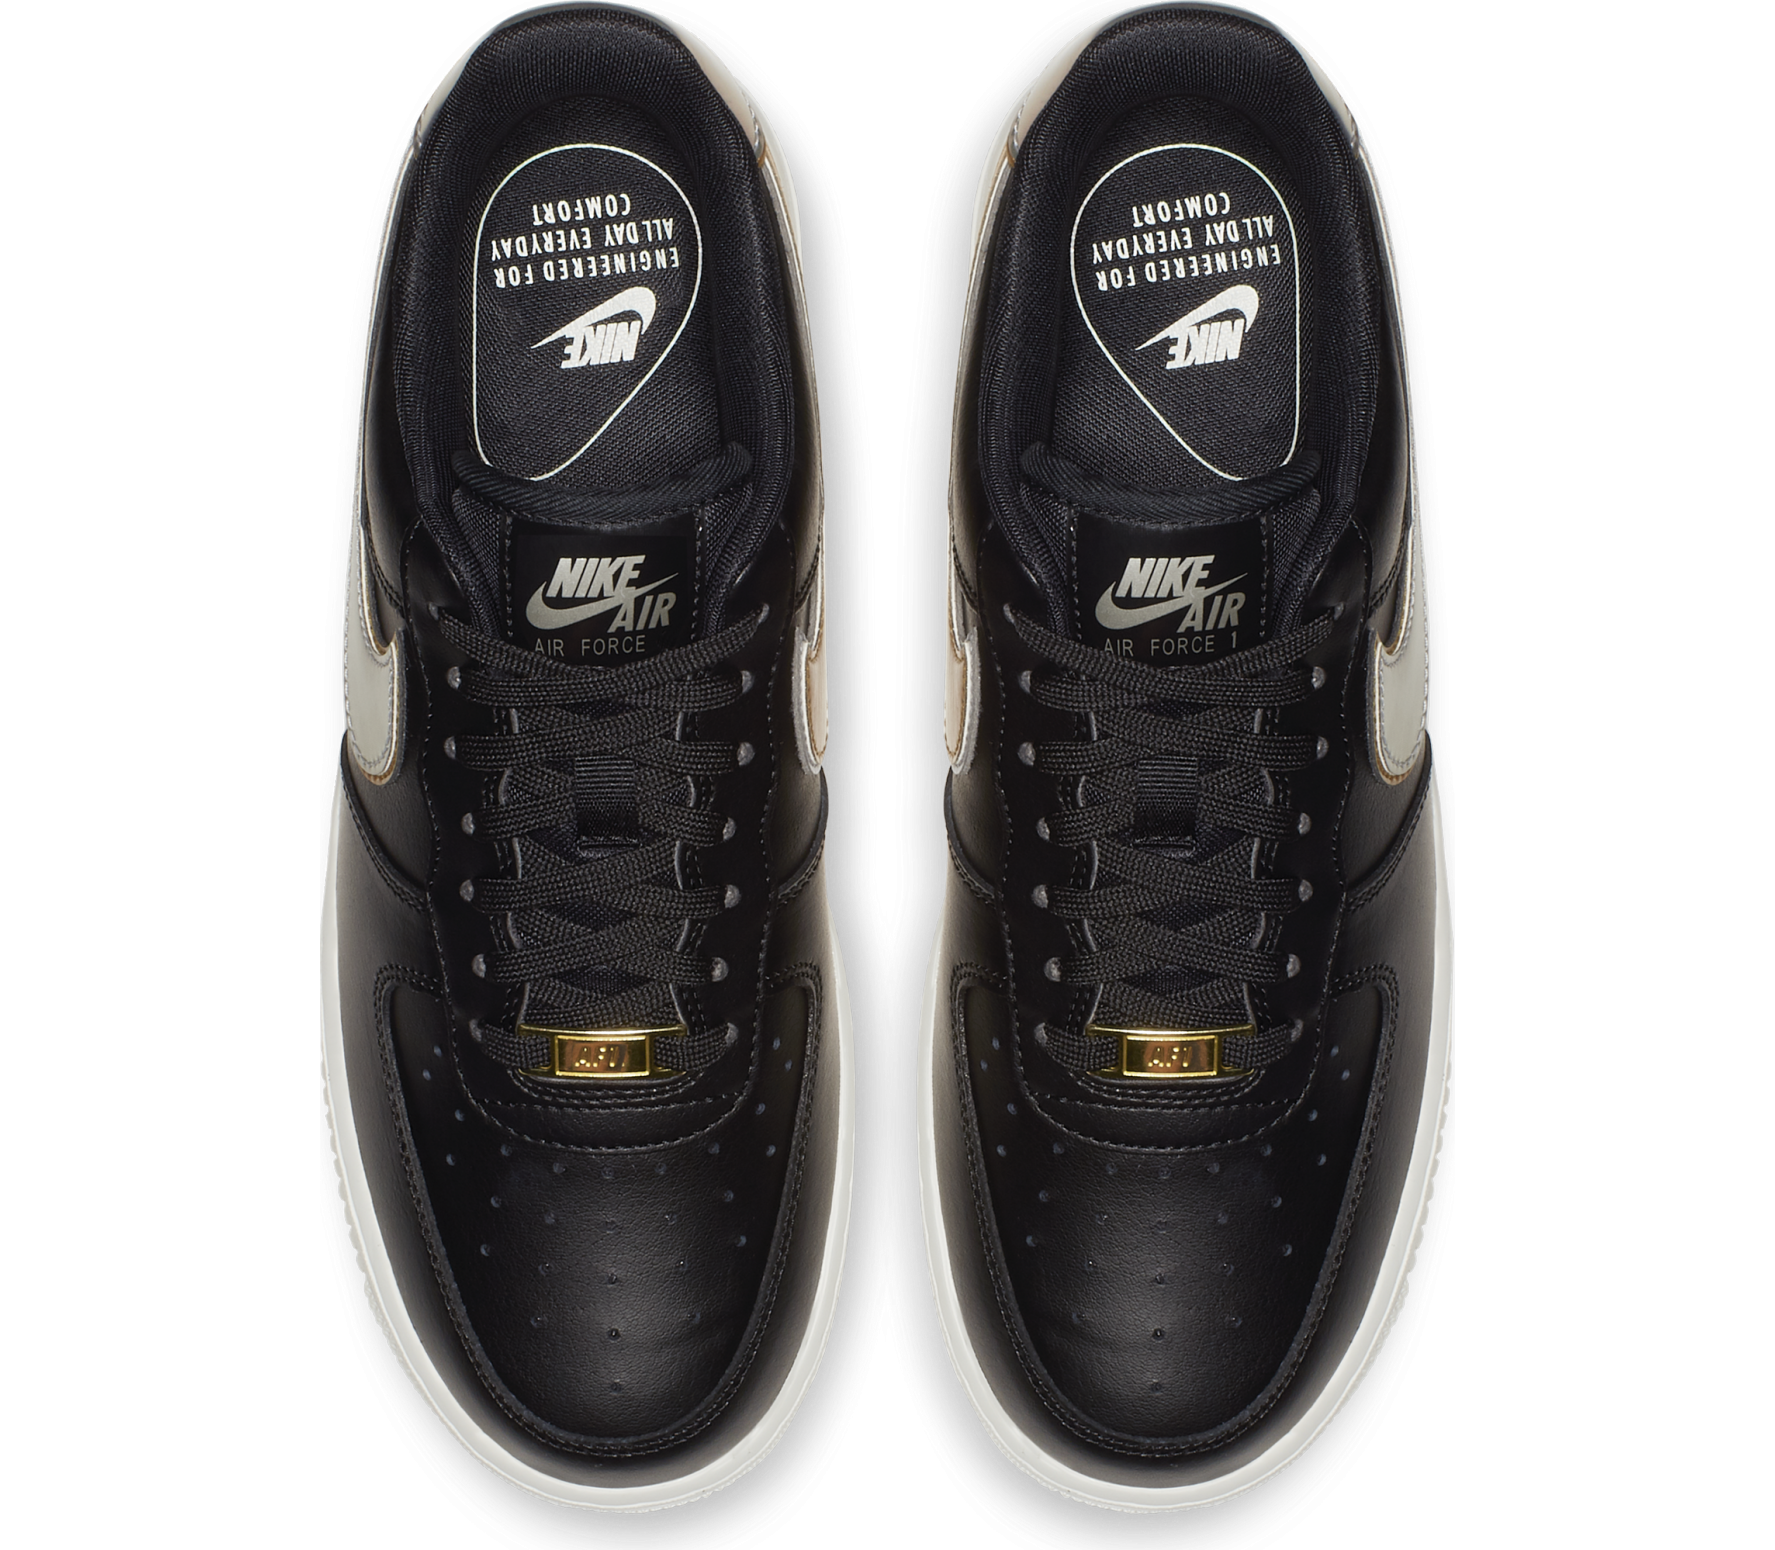 Nike Sportswear - Air Force 1 '07 Metallic Damen Sneaker (schwarz)